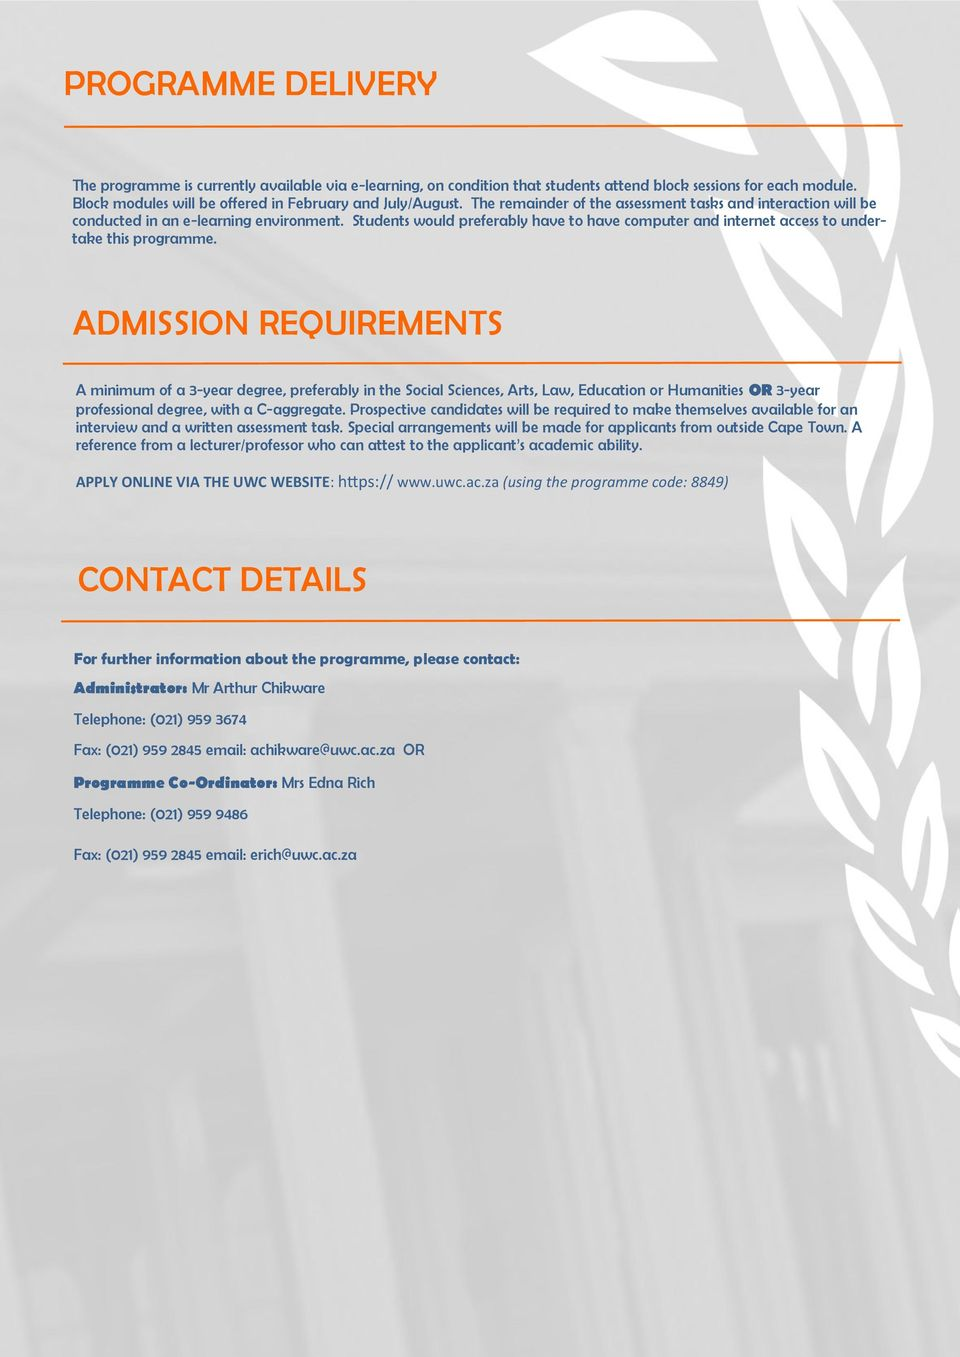 ADMISSION REQUIREMENTS A minimum of a 3-year degree, preferably in the Social Sciences, Arts, Law, Education or Humanities OR 3-year professional degree, with a C-aggregate.